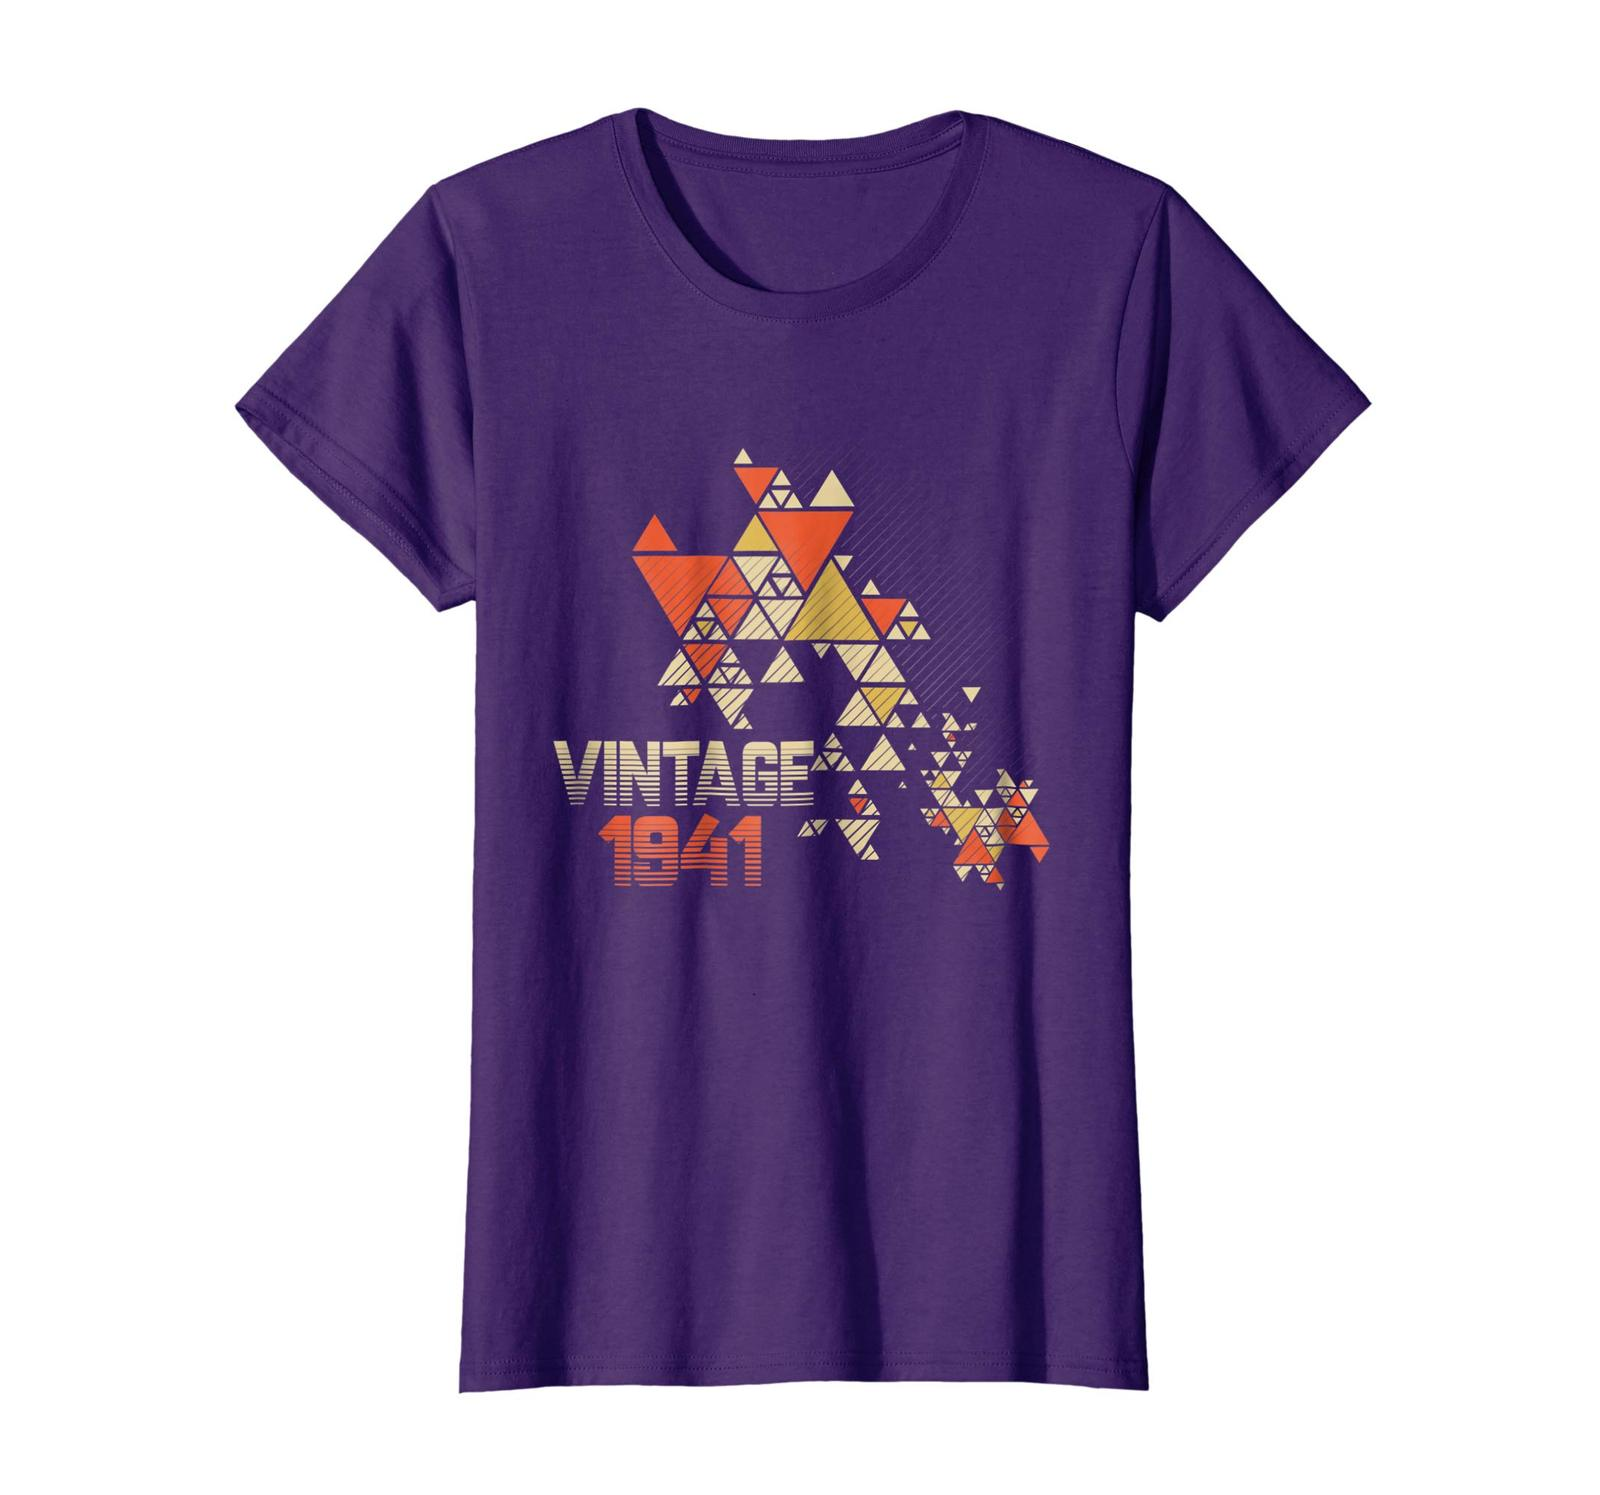 Brother Shirts - Vintage 1941 - 77 Years Old 77th Birthday Gift Shirt Wowen